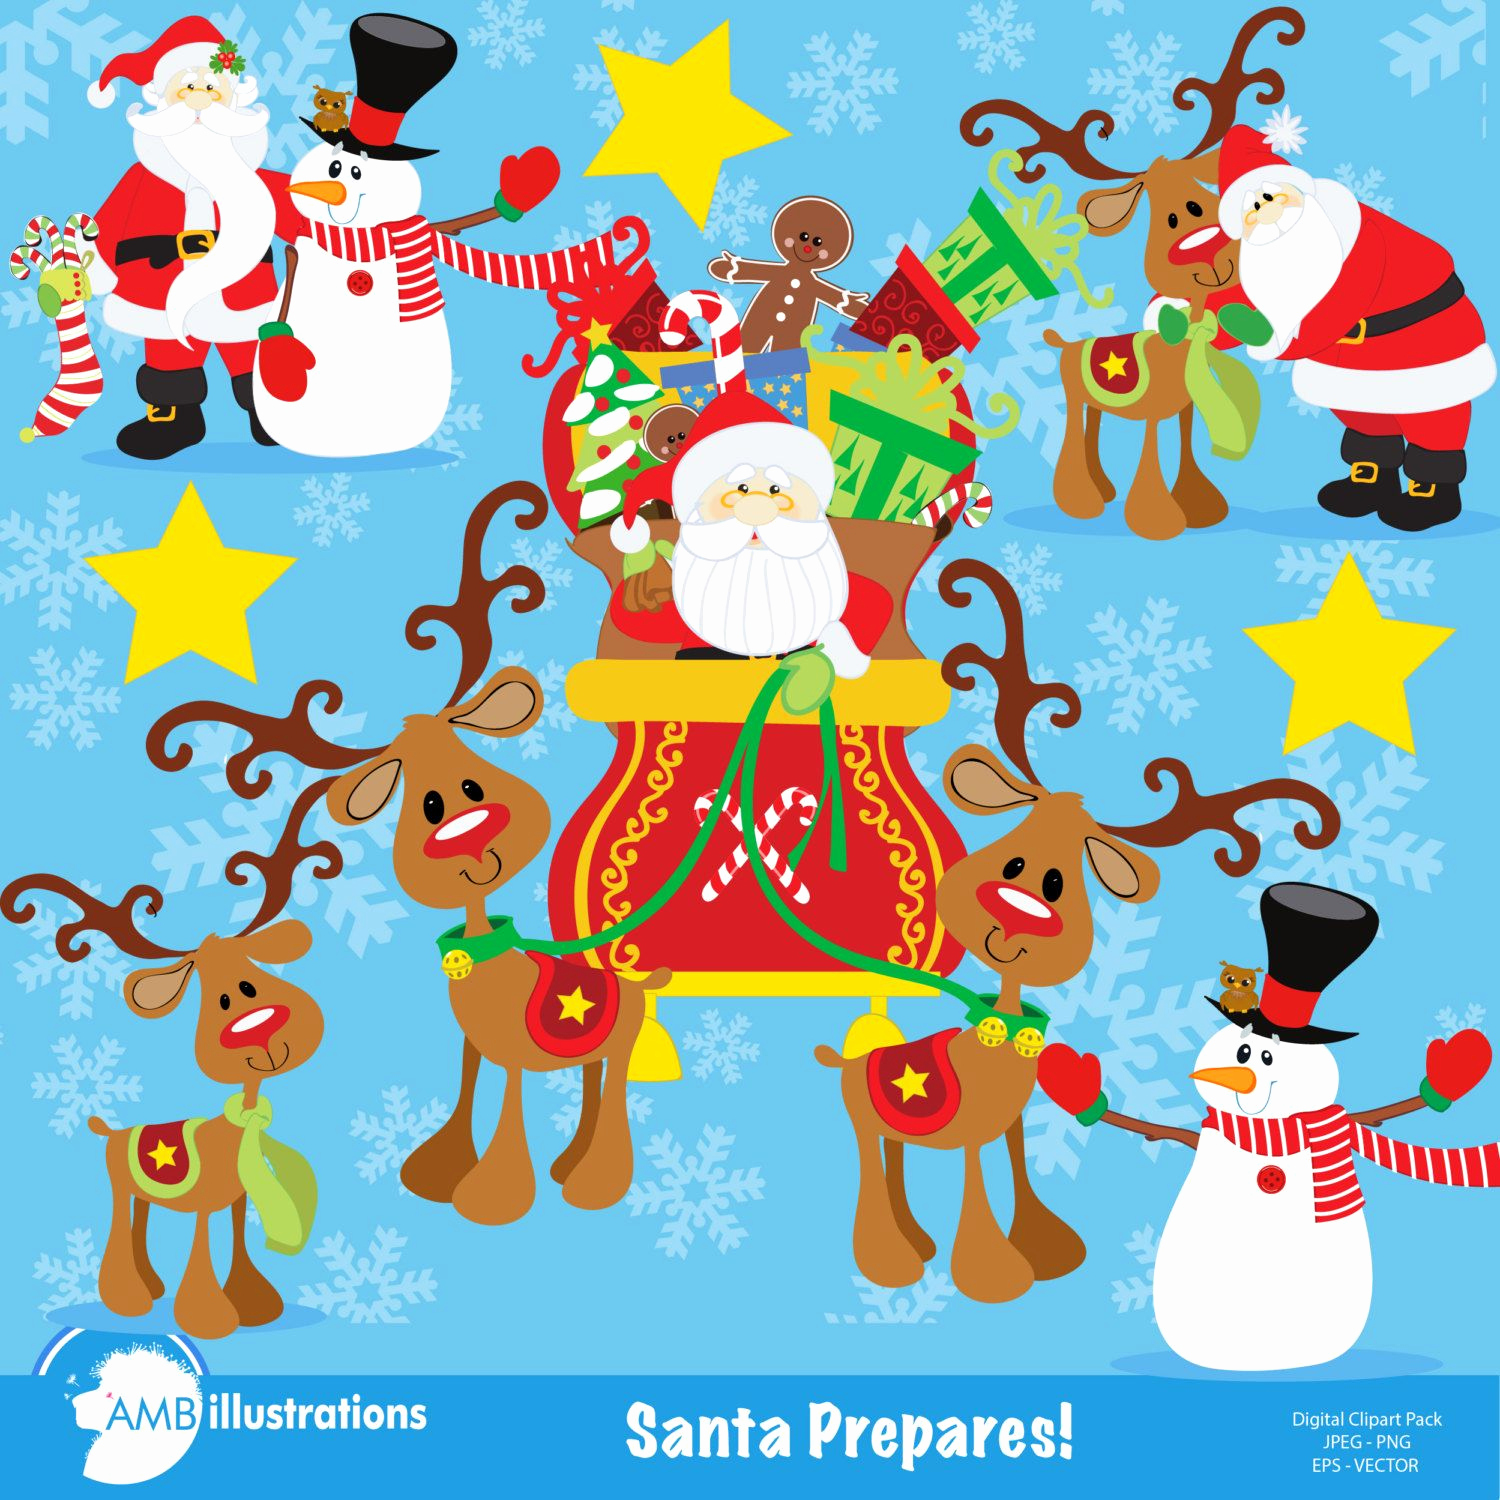 200 Inspirational Christmas Bow Clipart Combination.